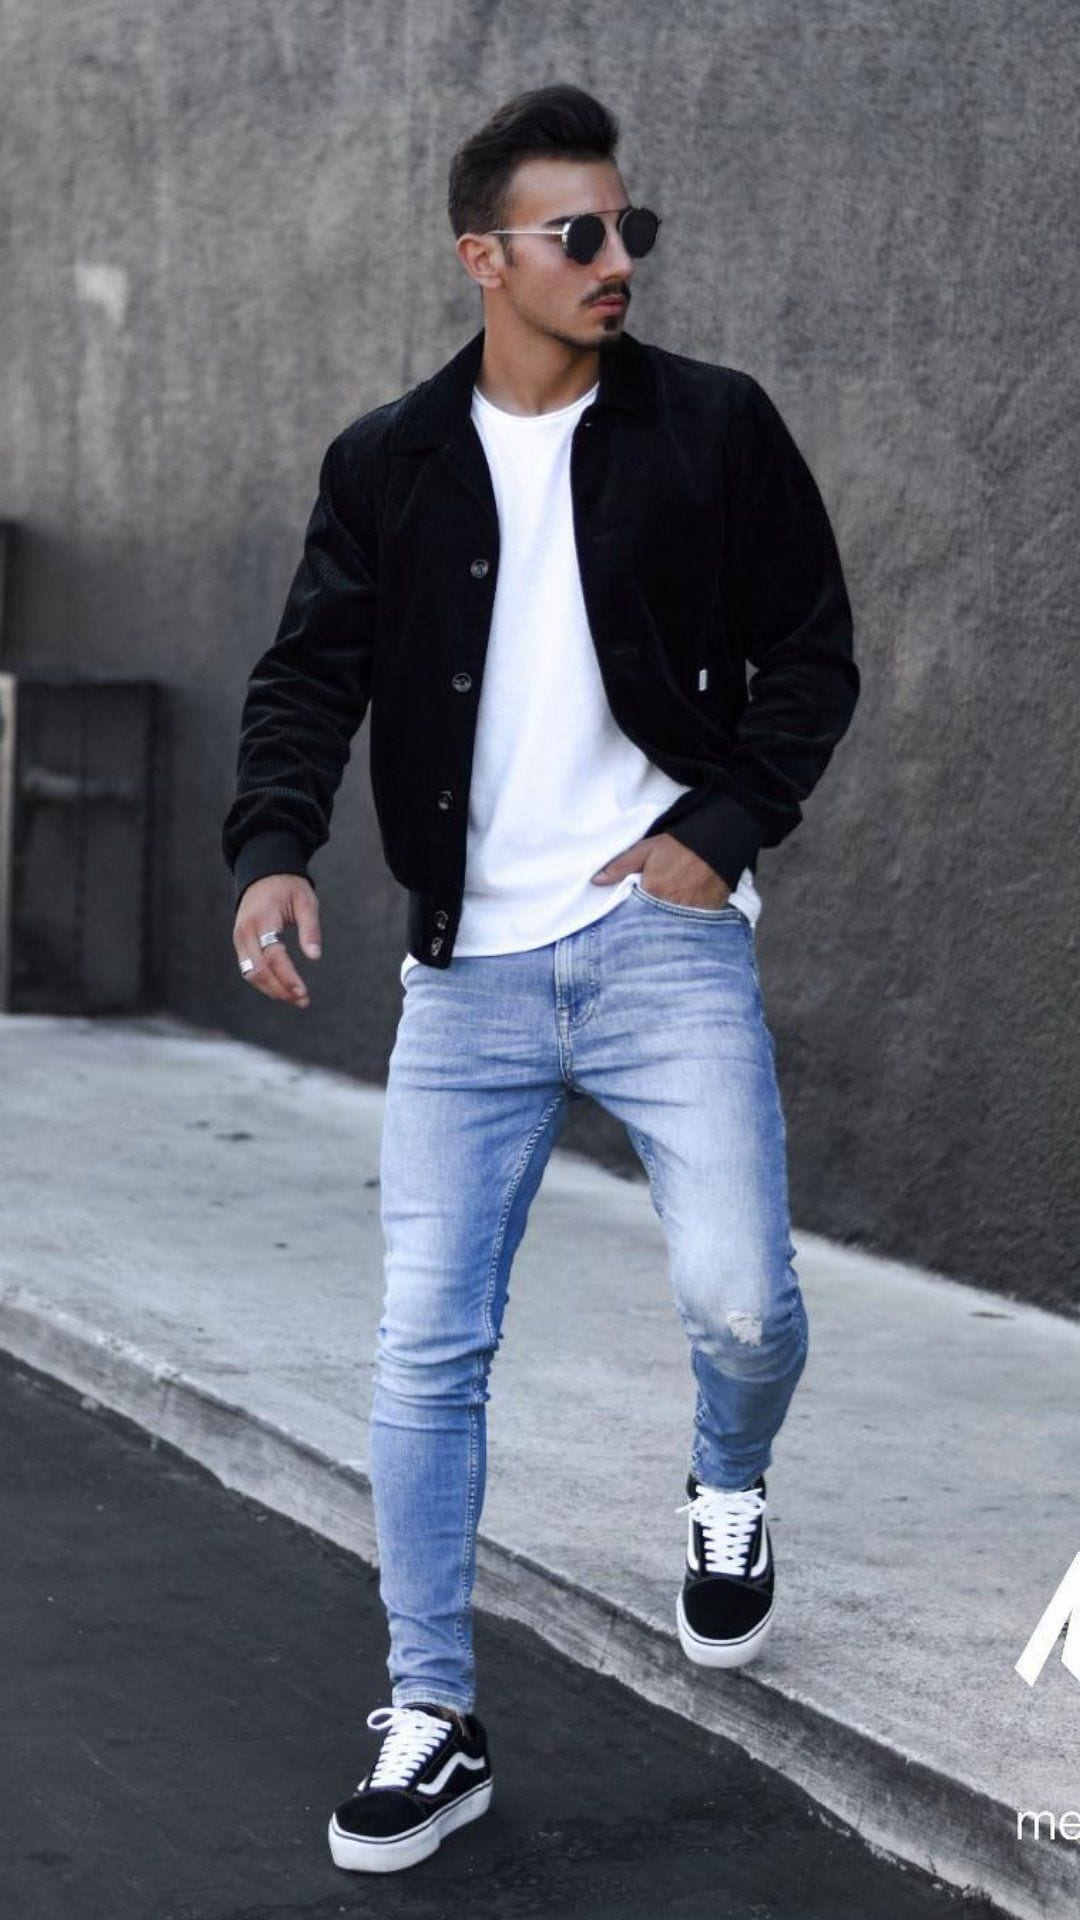 Casual_outfits_for_young_guys_7 Cute Outfits for Skinny Guys - Styling Tips With New Trends